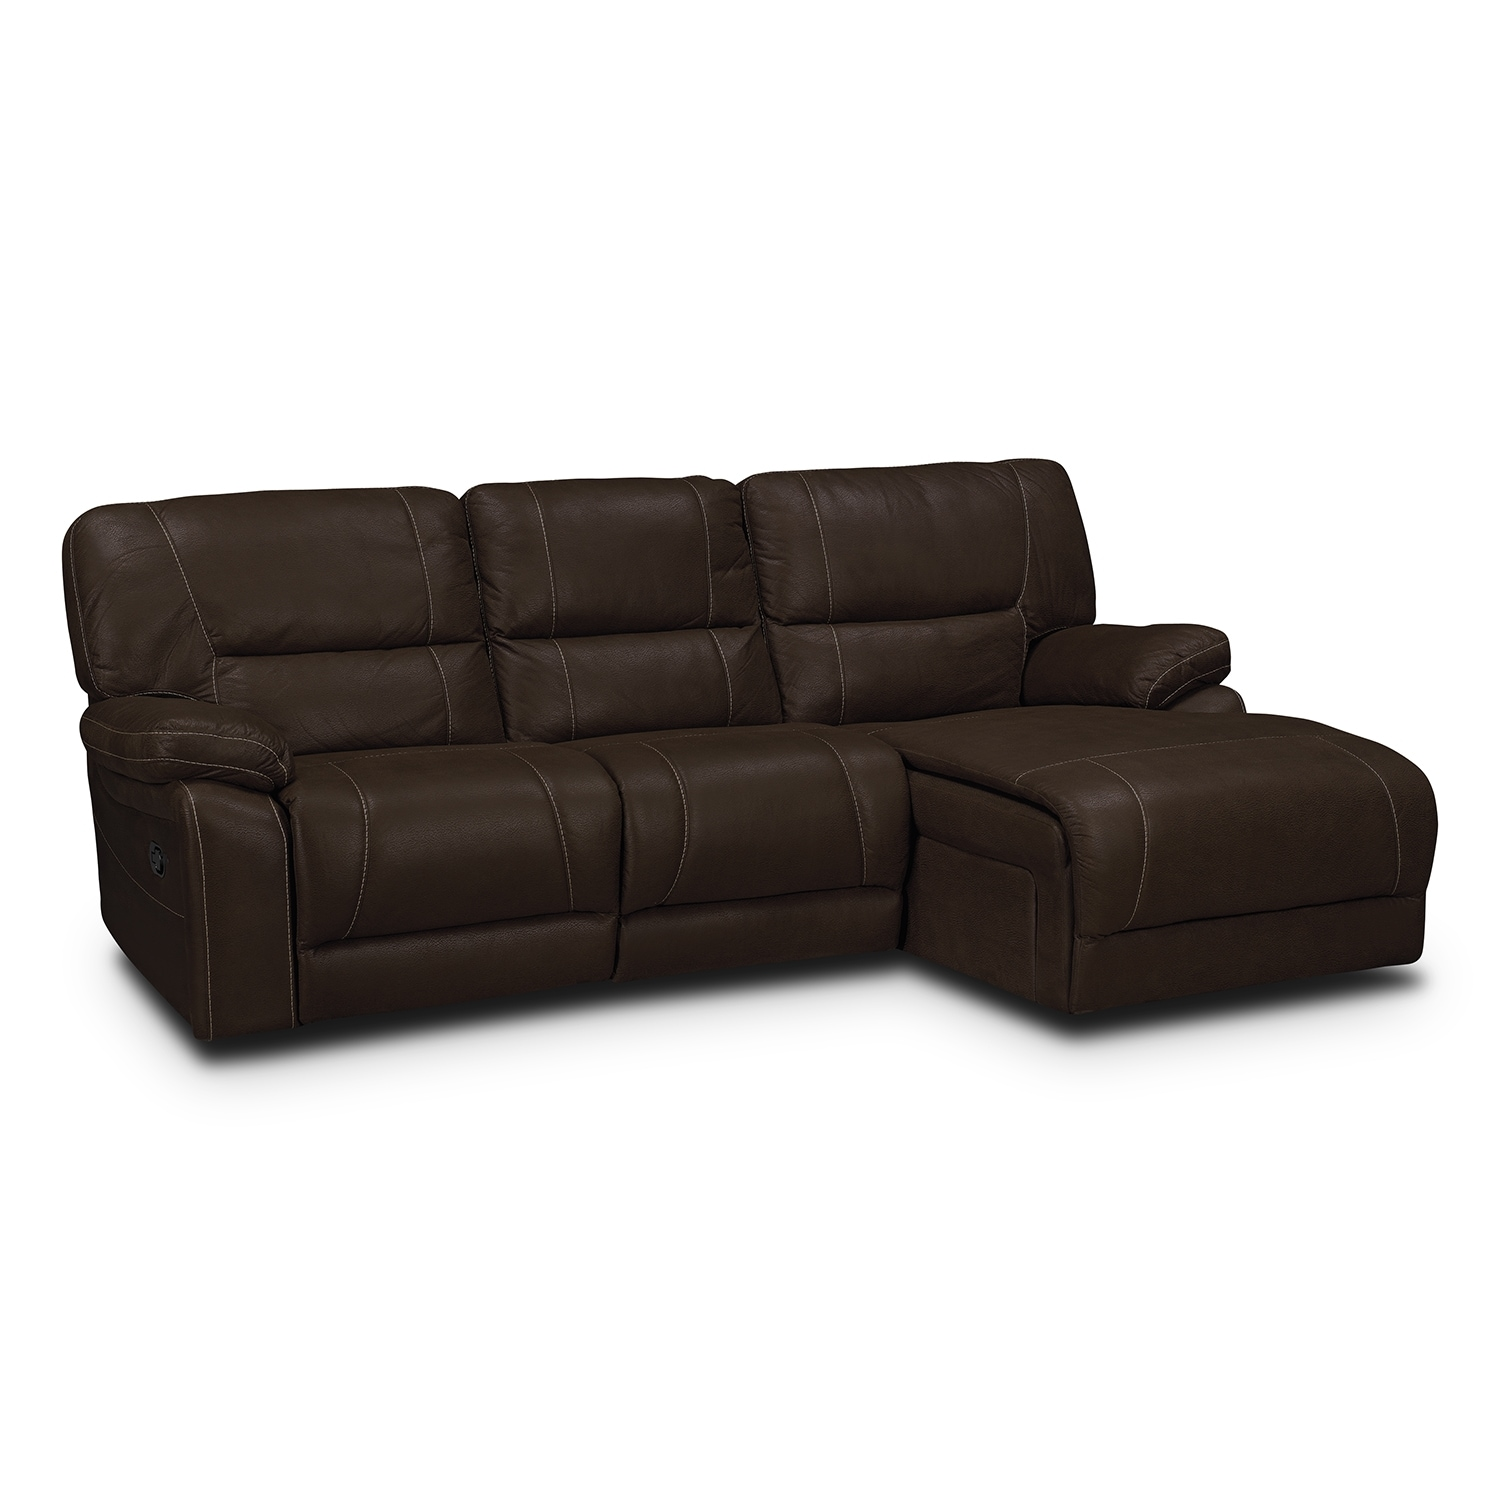 Wyoming 2-Piece Reclining Sectional with Right-Facing Chaise  - Saddle Brown